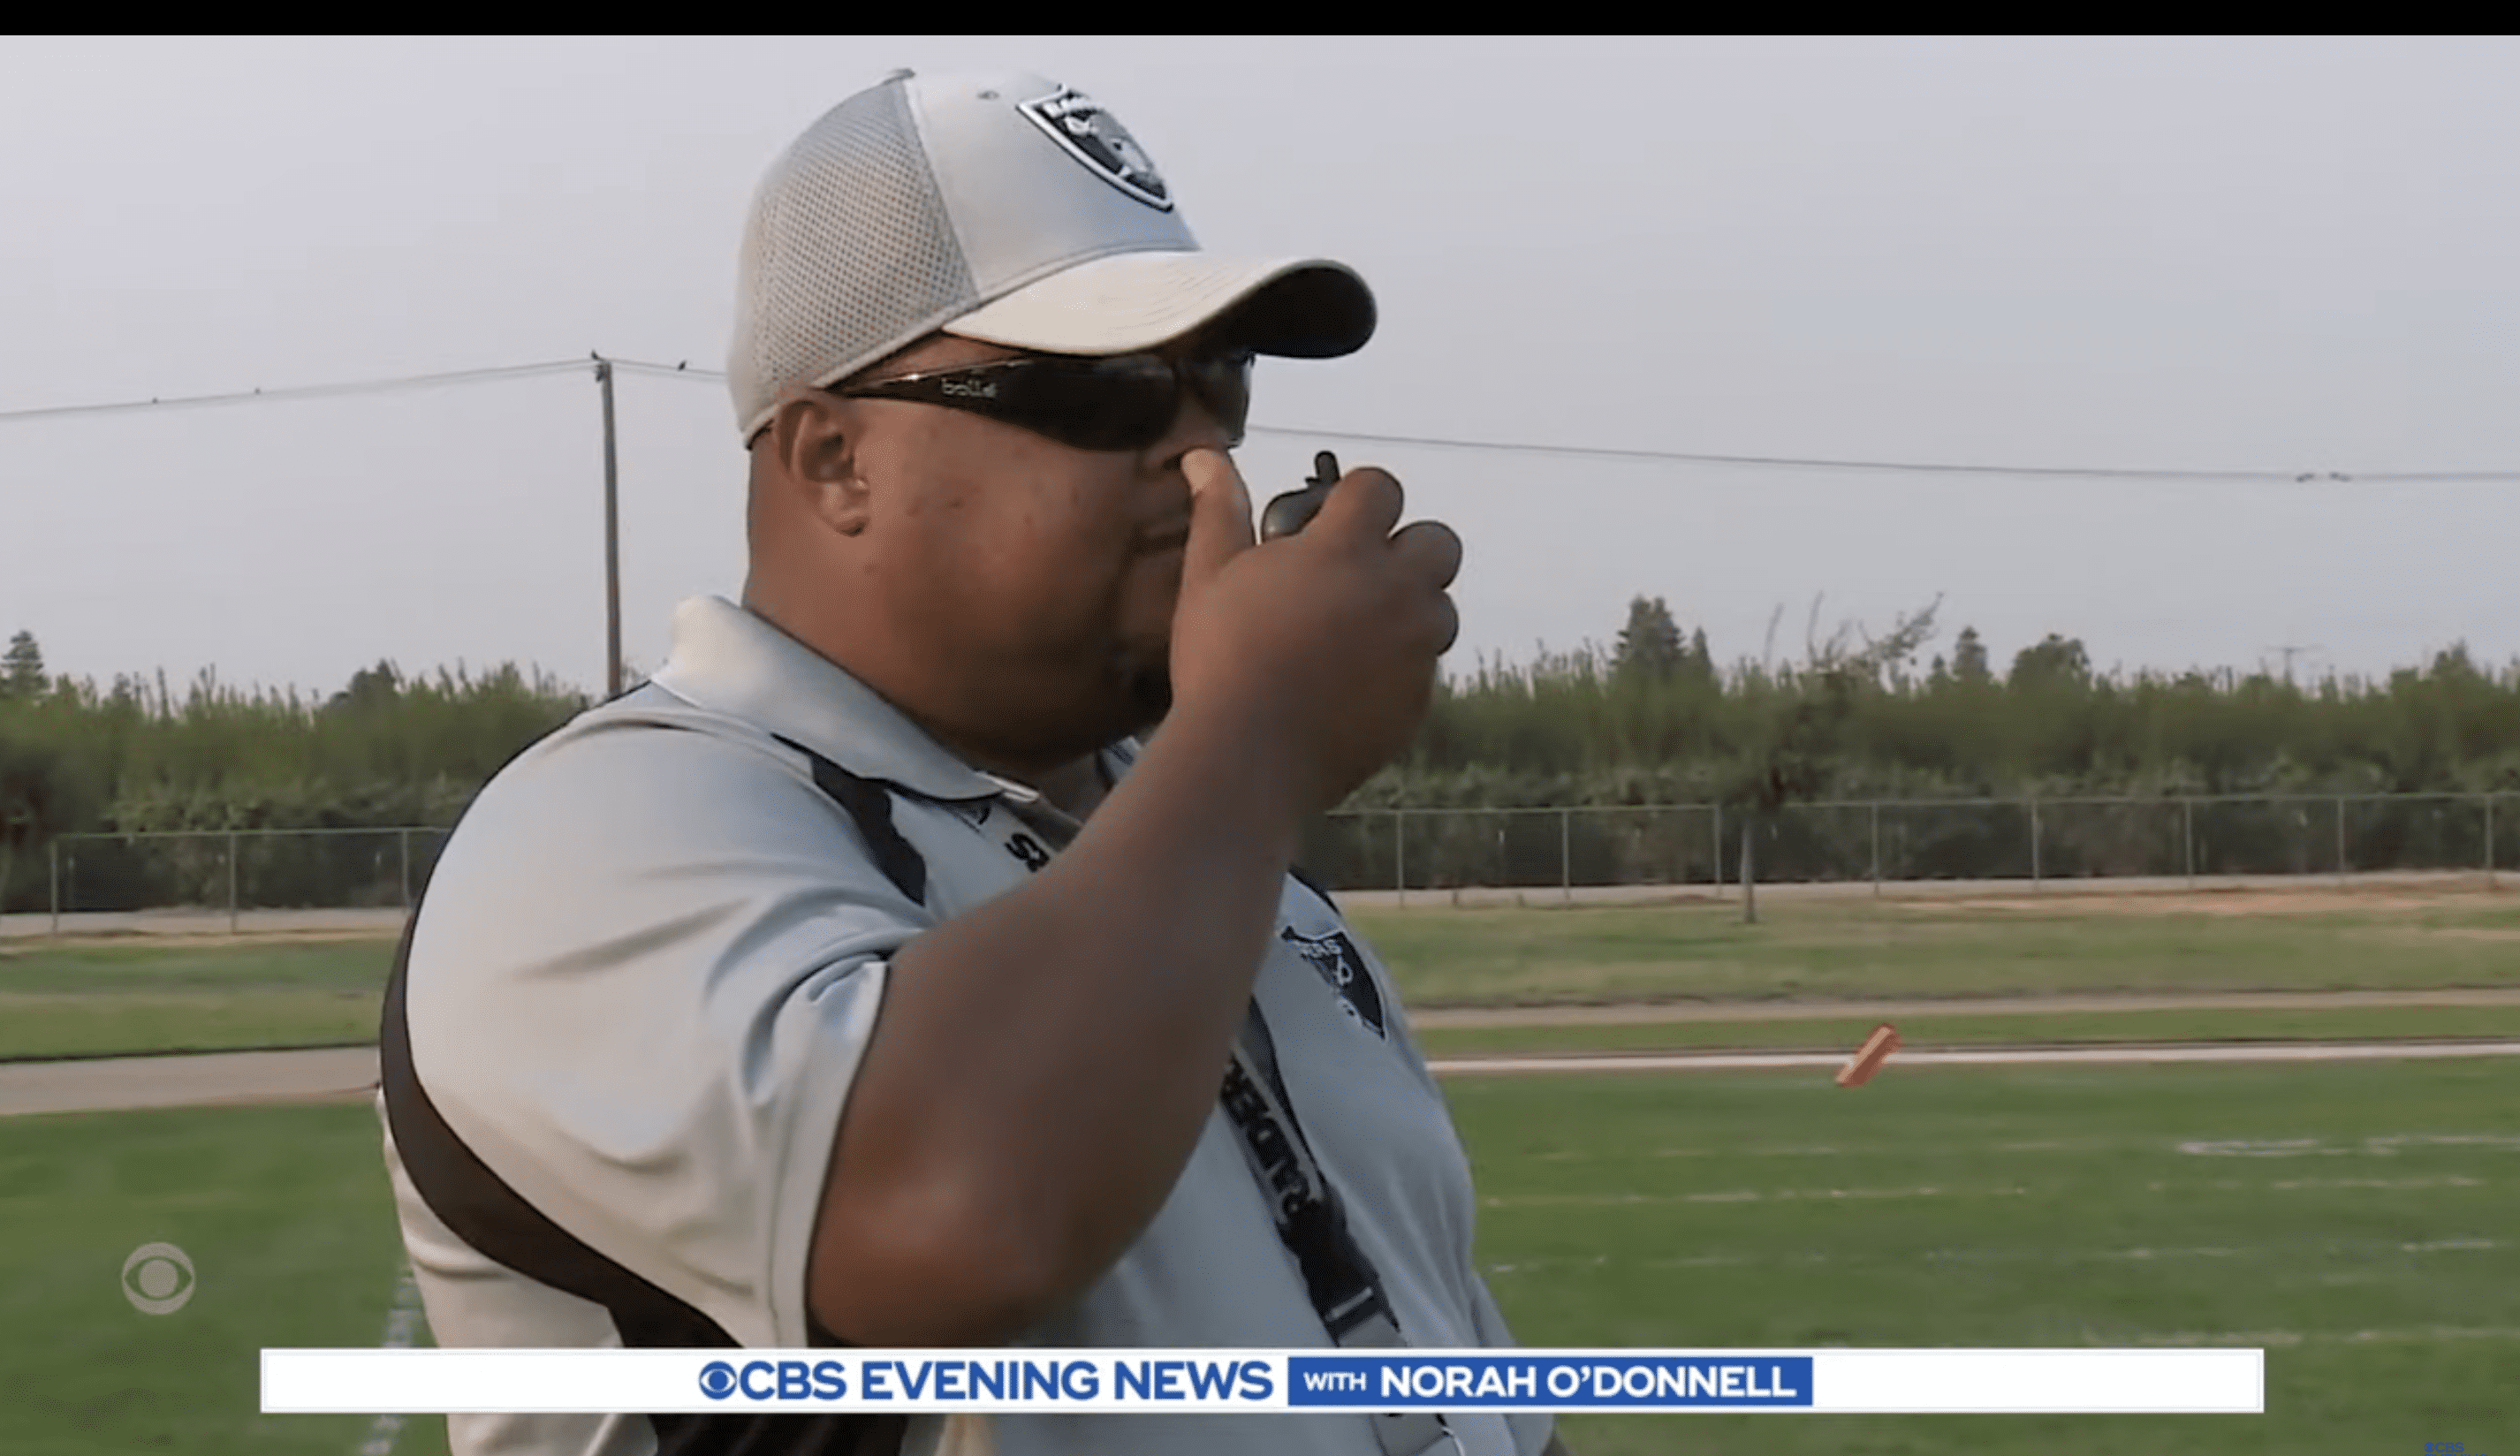 Bracy's dad guides him on the field through a walkie-talkie. | Photo: youtube.com/CBSEveningNews